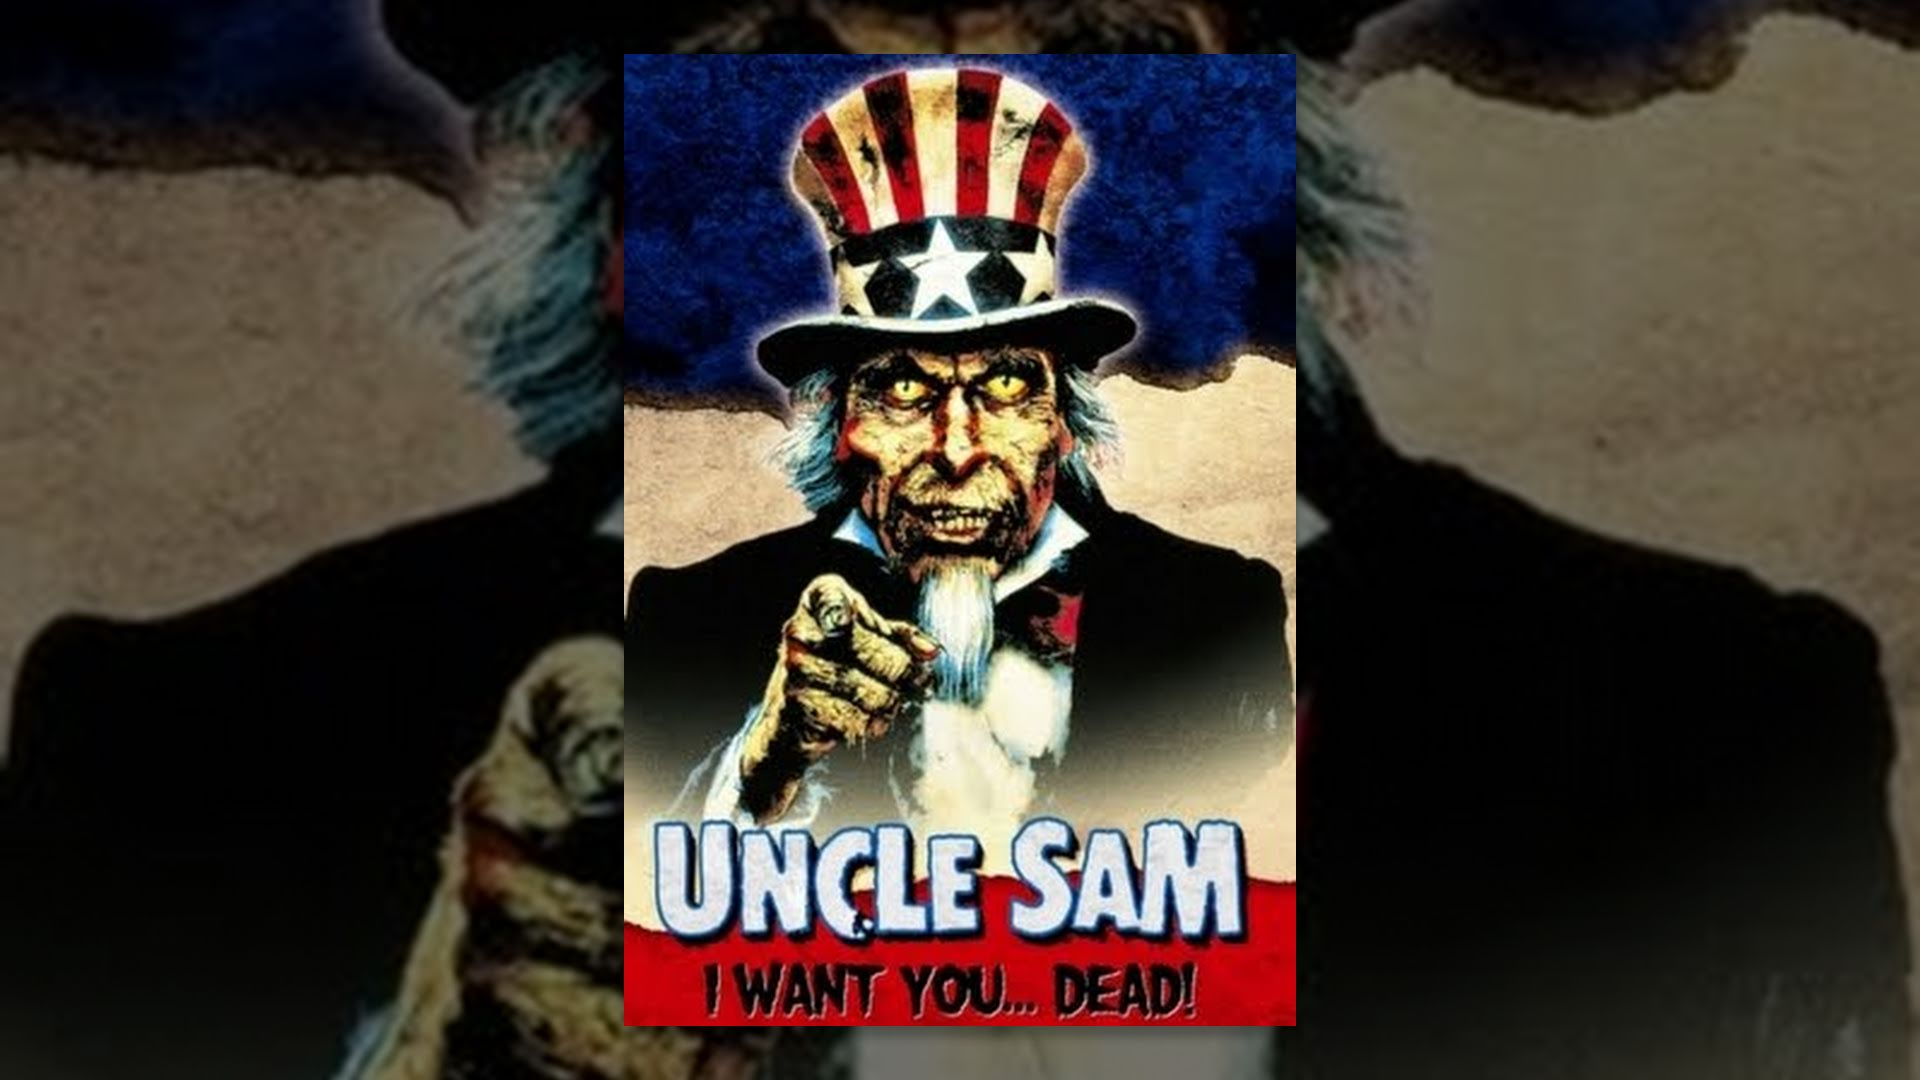 """maxresdefault 2 - Celebrate the 4th of July with Uncle Sam Actor David """"Shark"""" Fralick"""